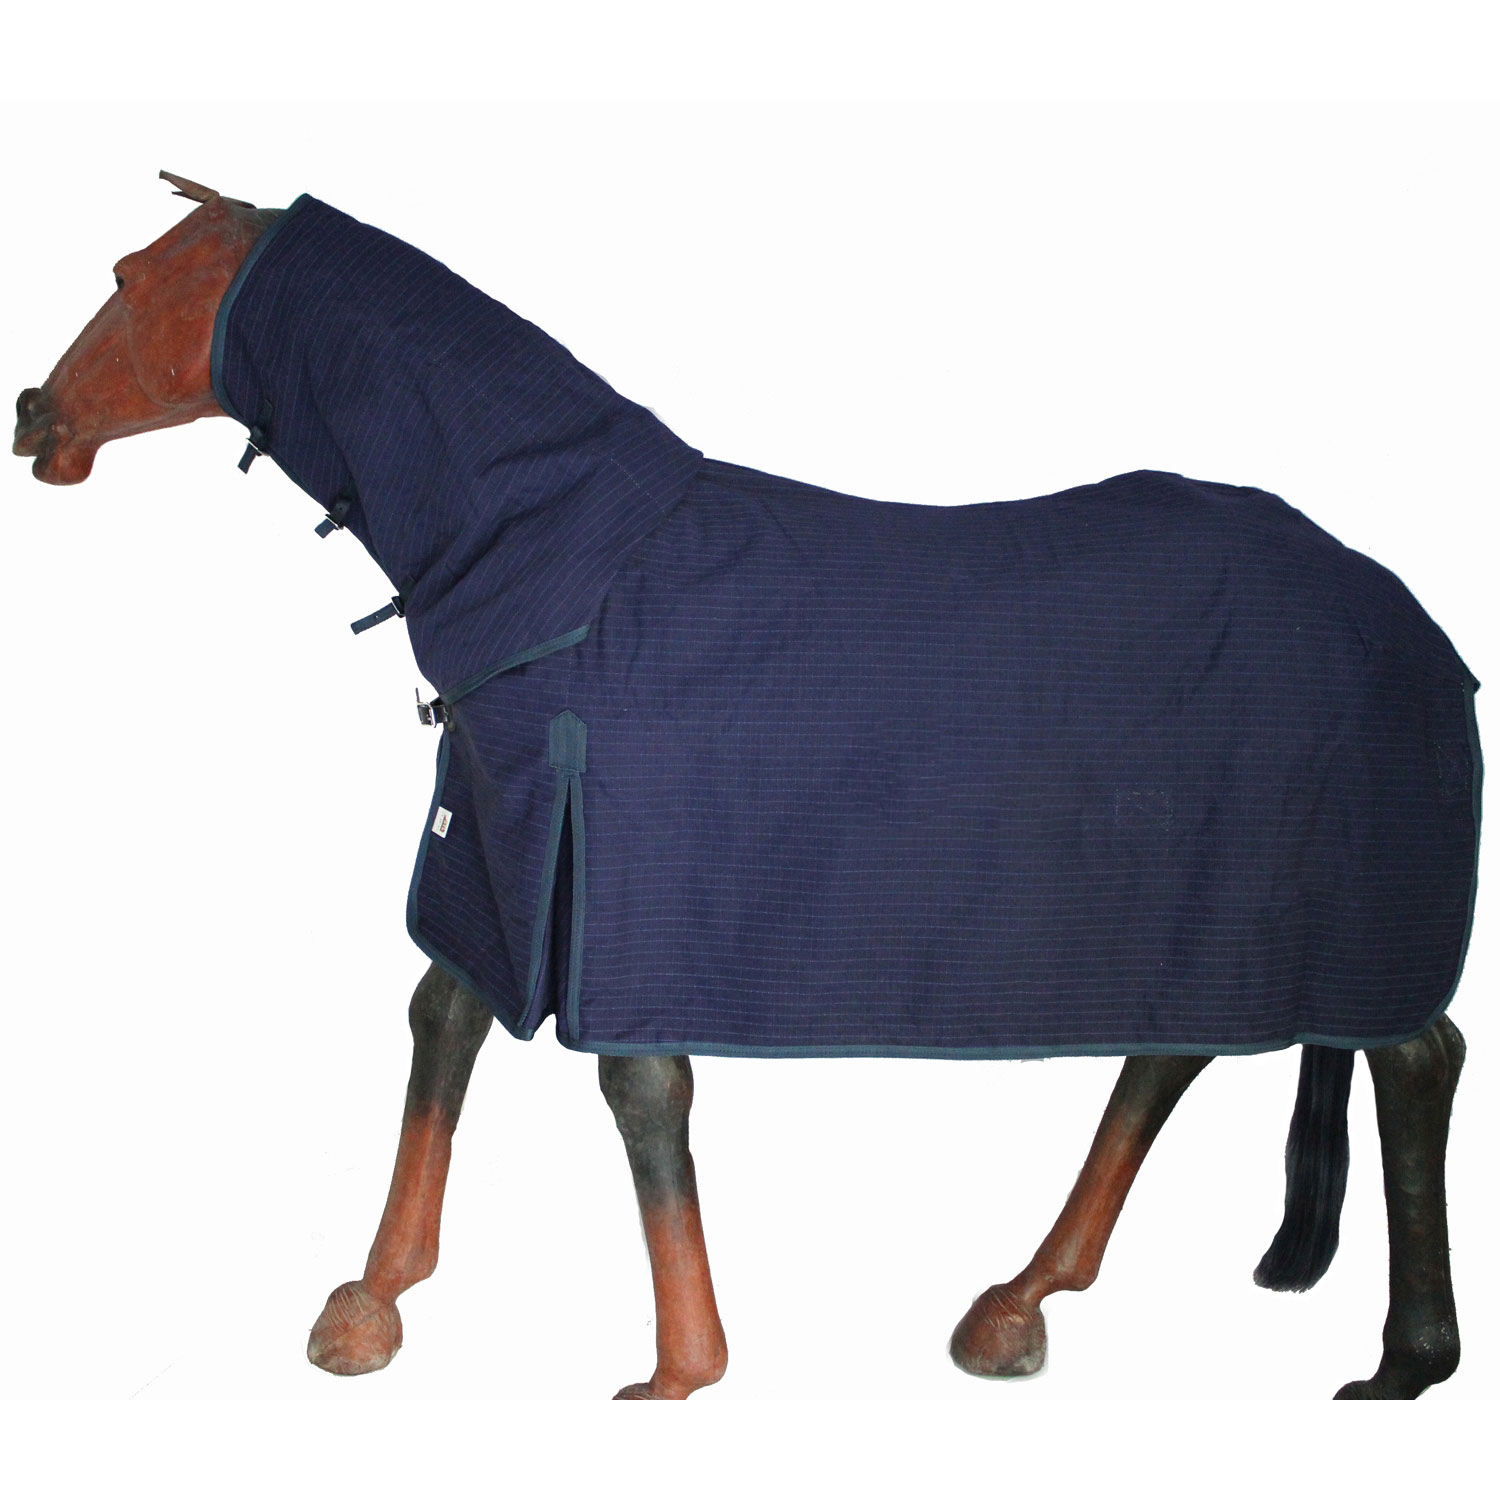 GNG-C5001 – Horse Canvas Lined Combo Rug in Navy Blue Checks